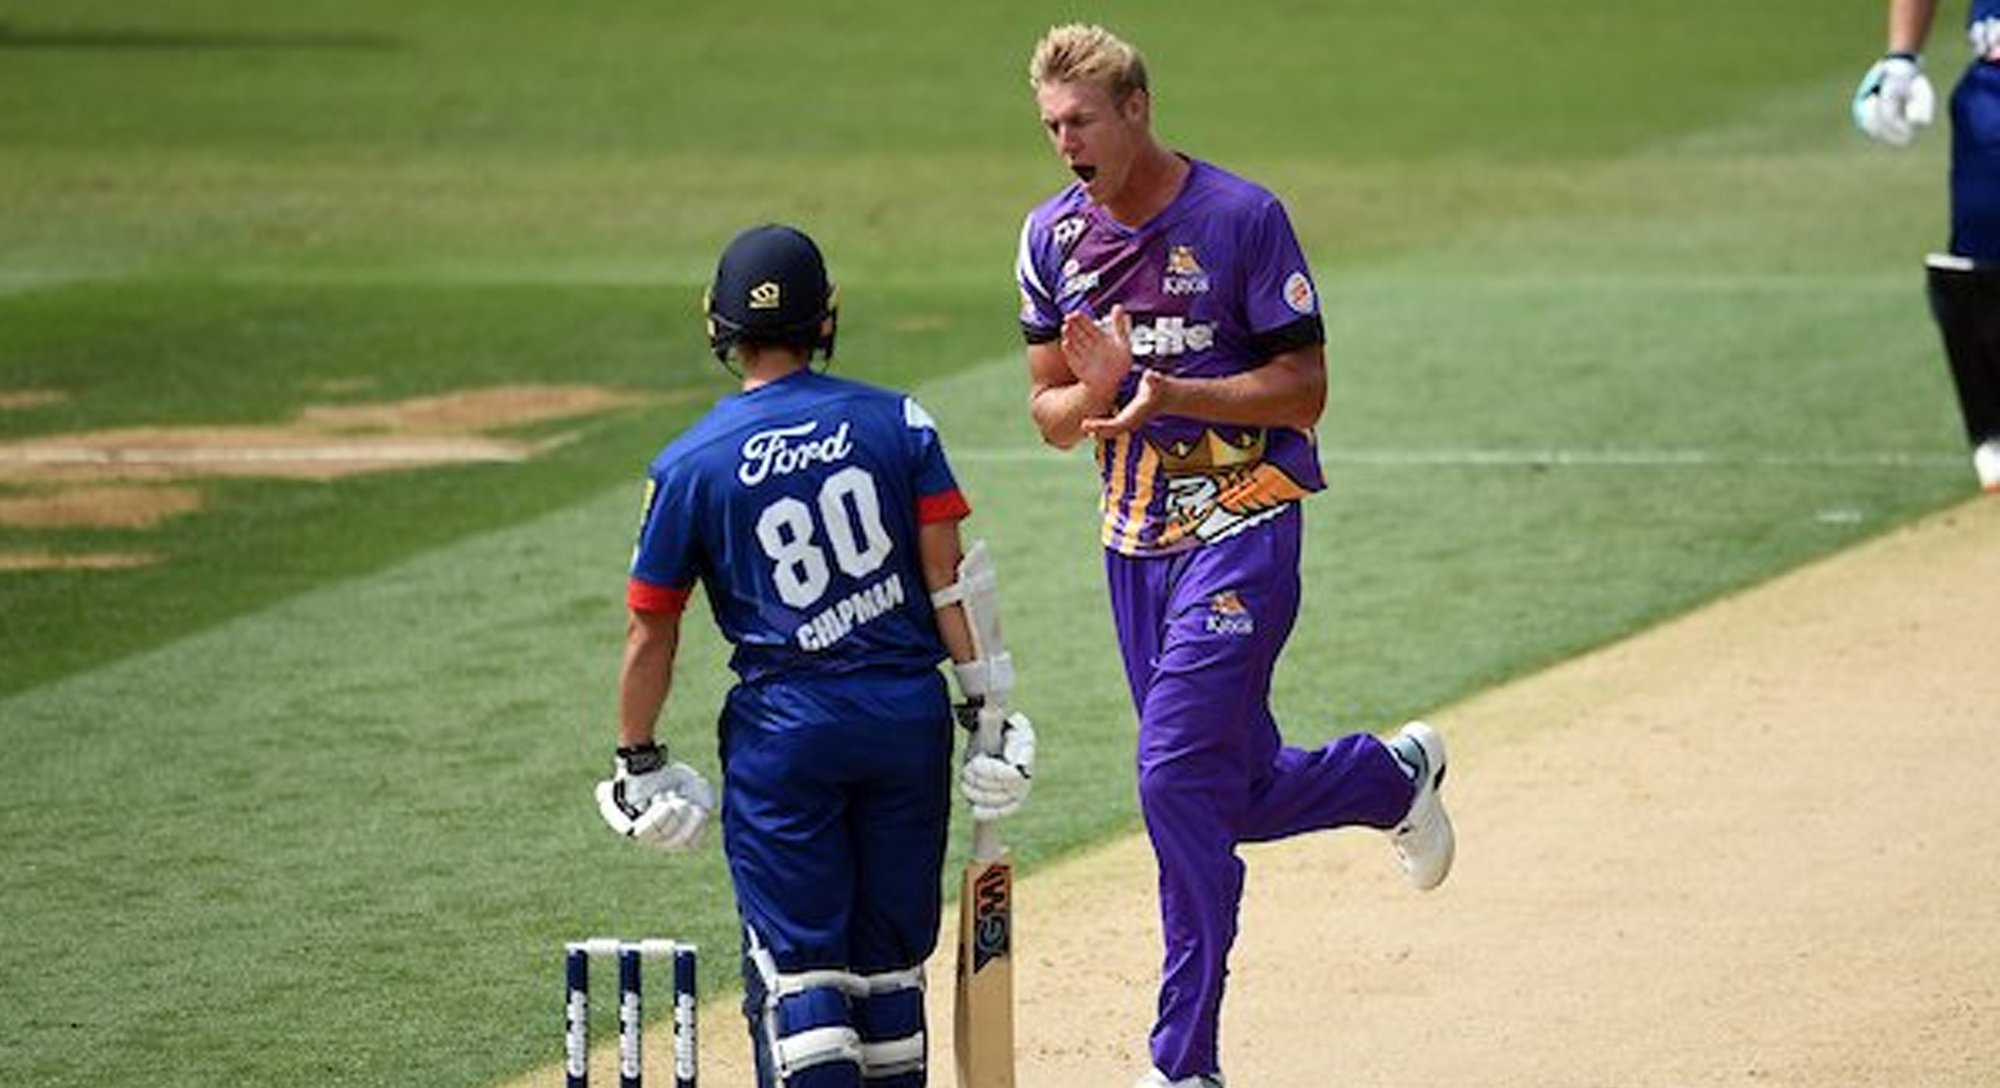 kyle jamieson claims third best figures in t20 format